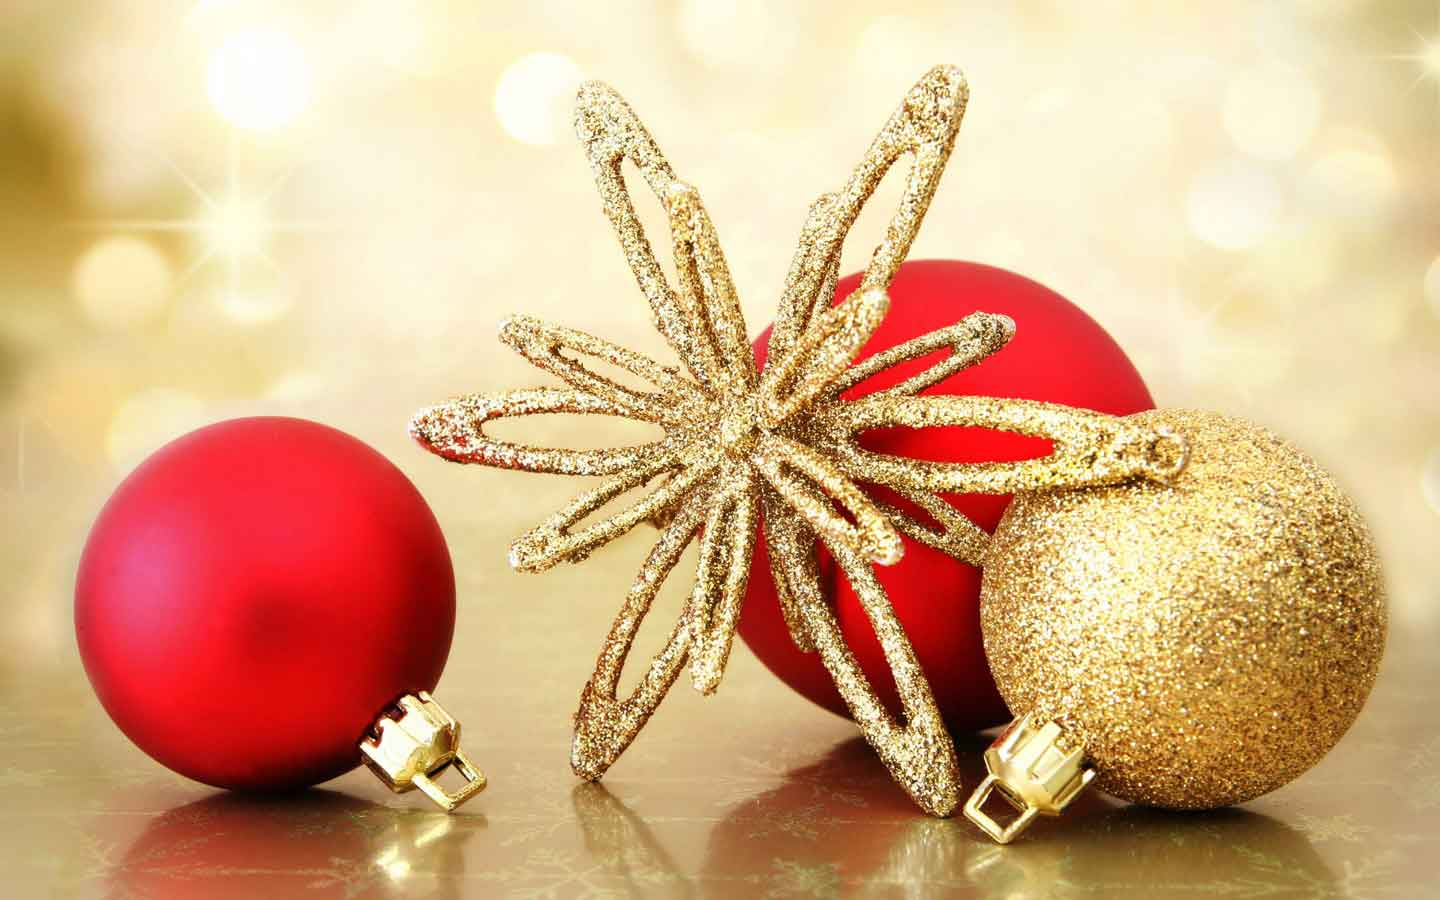 Beautiful Christmas Ornaments stunning christmas ornaments wallpaper | 1440x900 | #26611